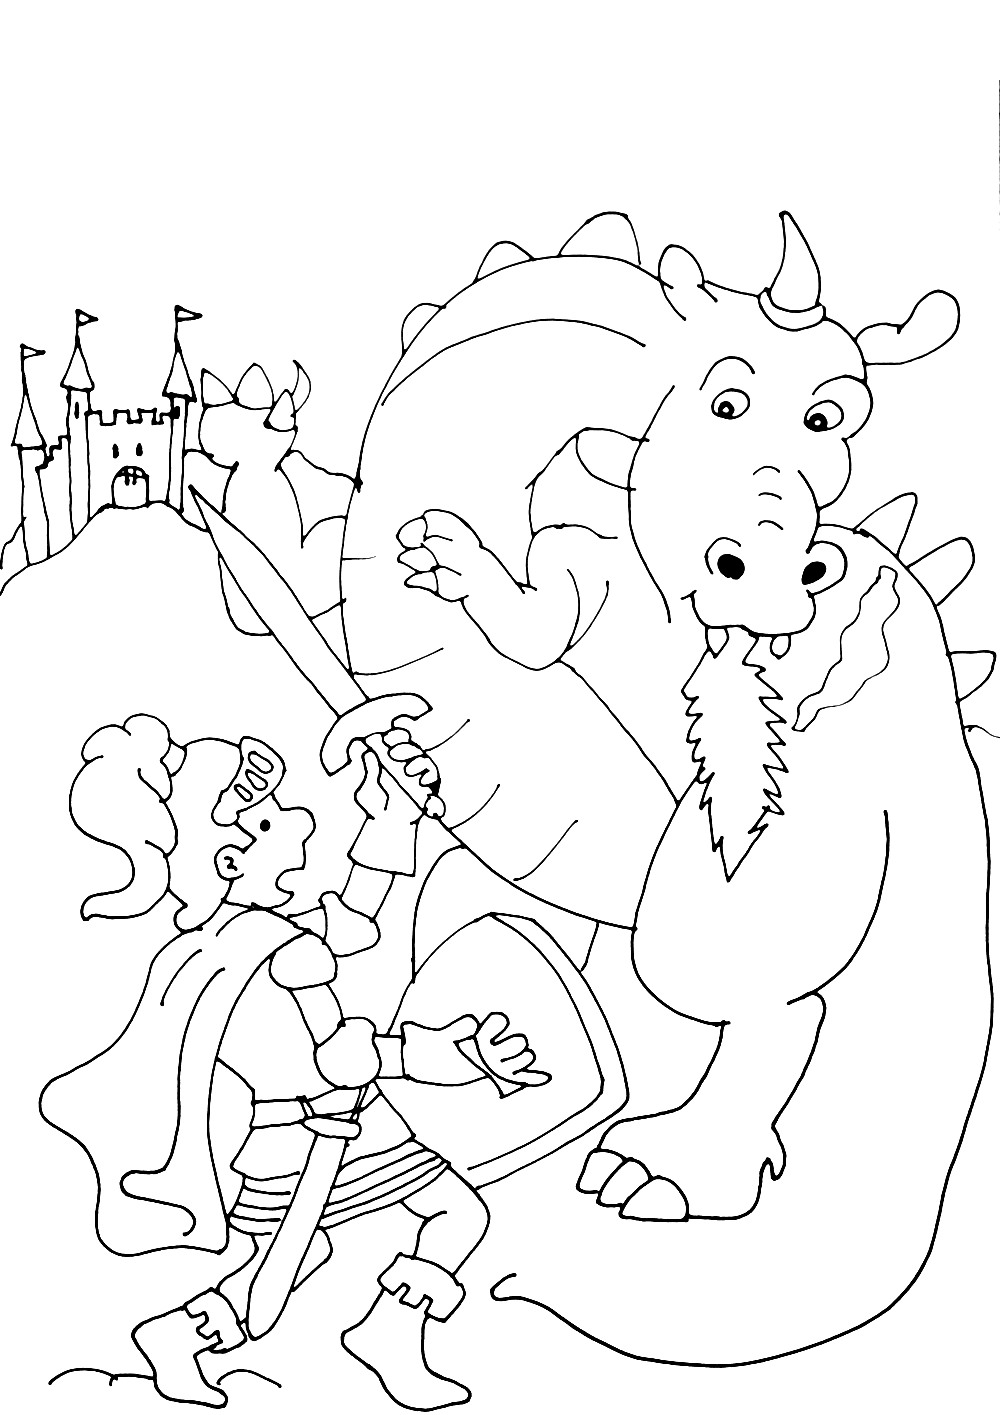 Chevaliers dragons 1 coloriage chevaliers et de dragons - Coloriages de dragons ...